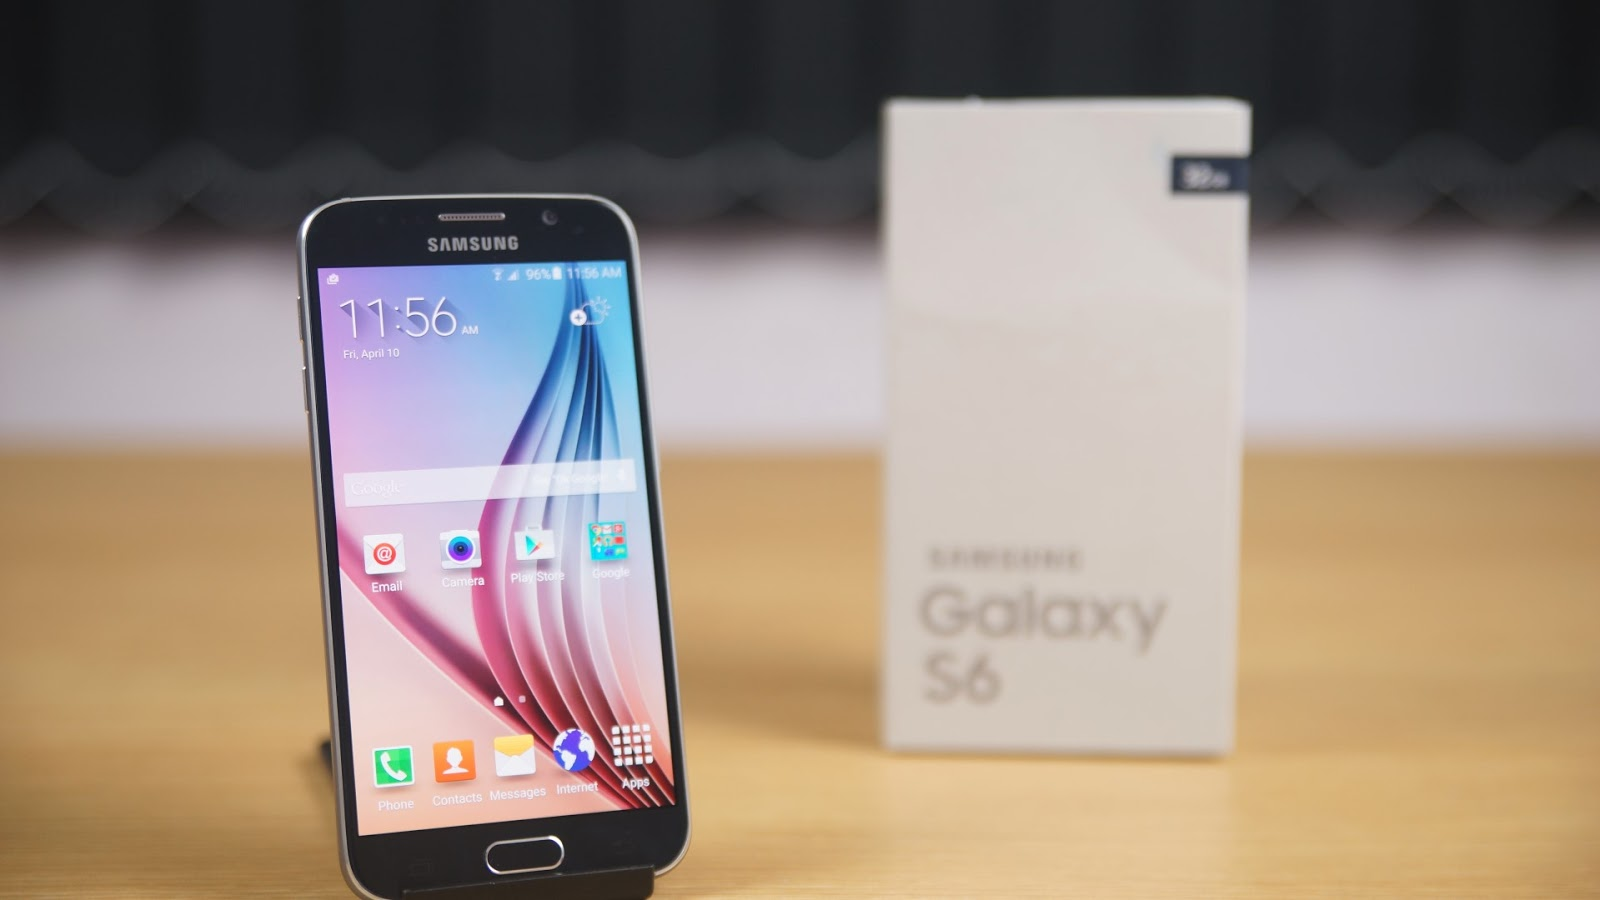 Galaxy S6 G920s (SK Telecom) LineageOS 15 ROM arrives with